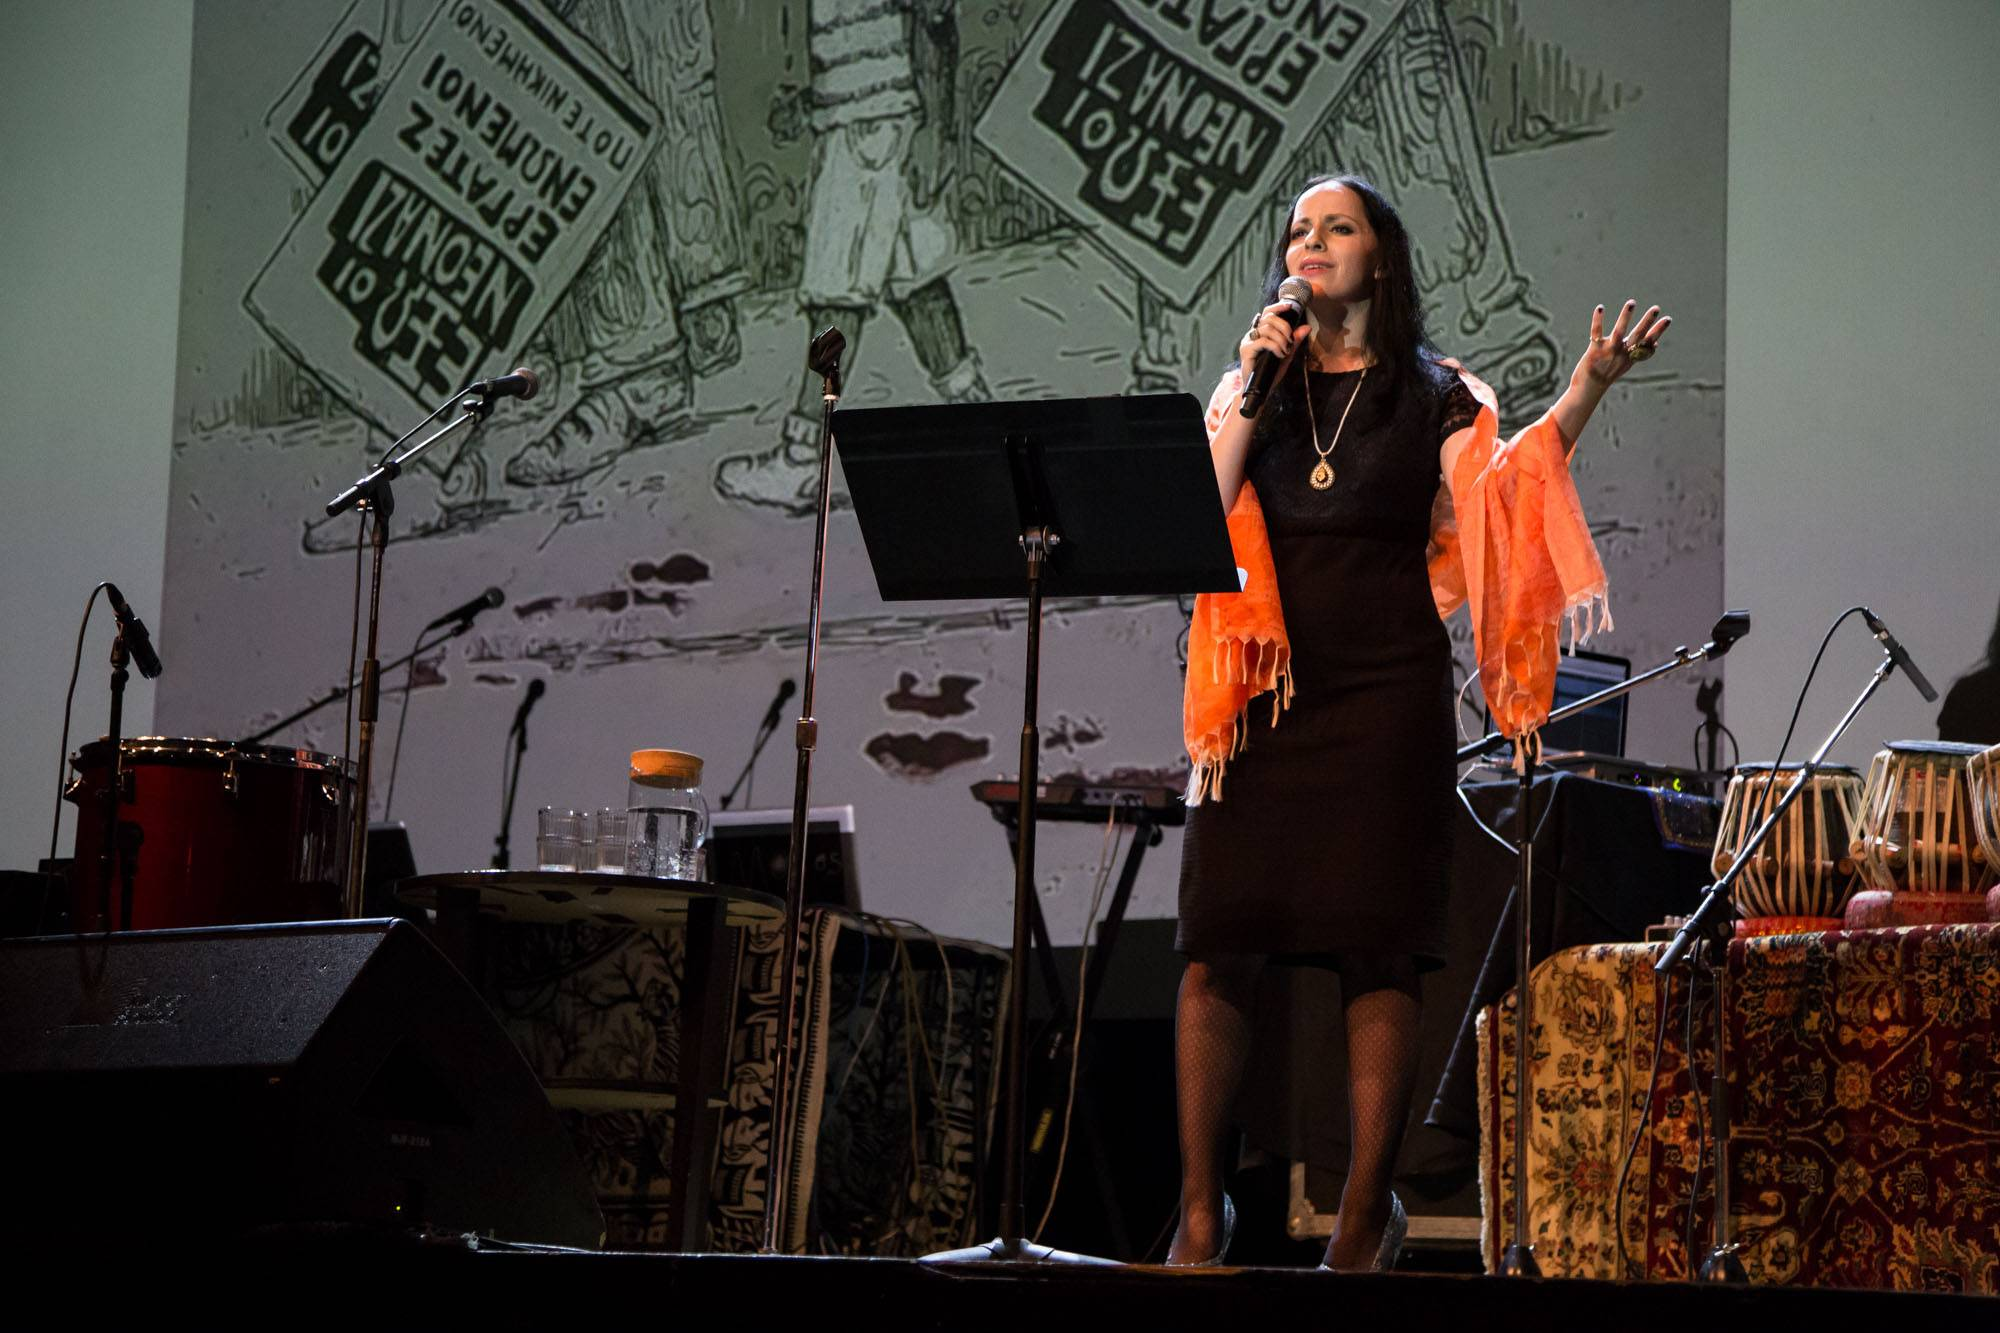 Molly Crabapple speaking at the Vogue Theatre, Vancouver, July 15 2017. Kirk Chantraine photo.